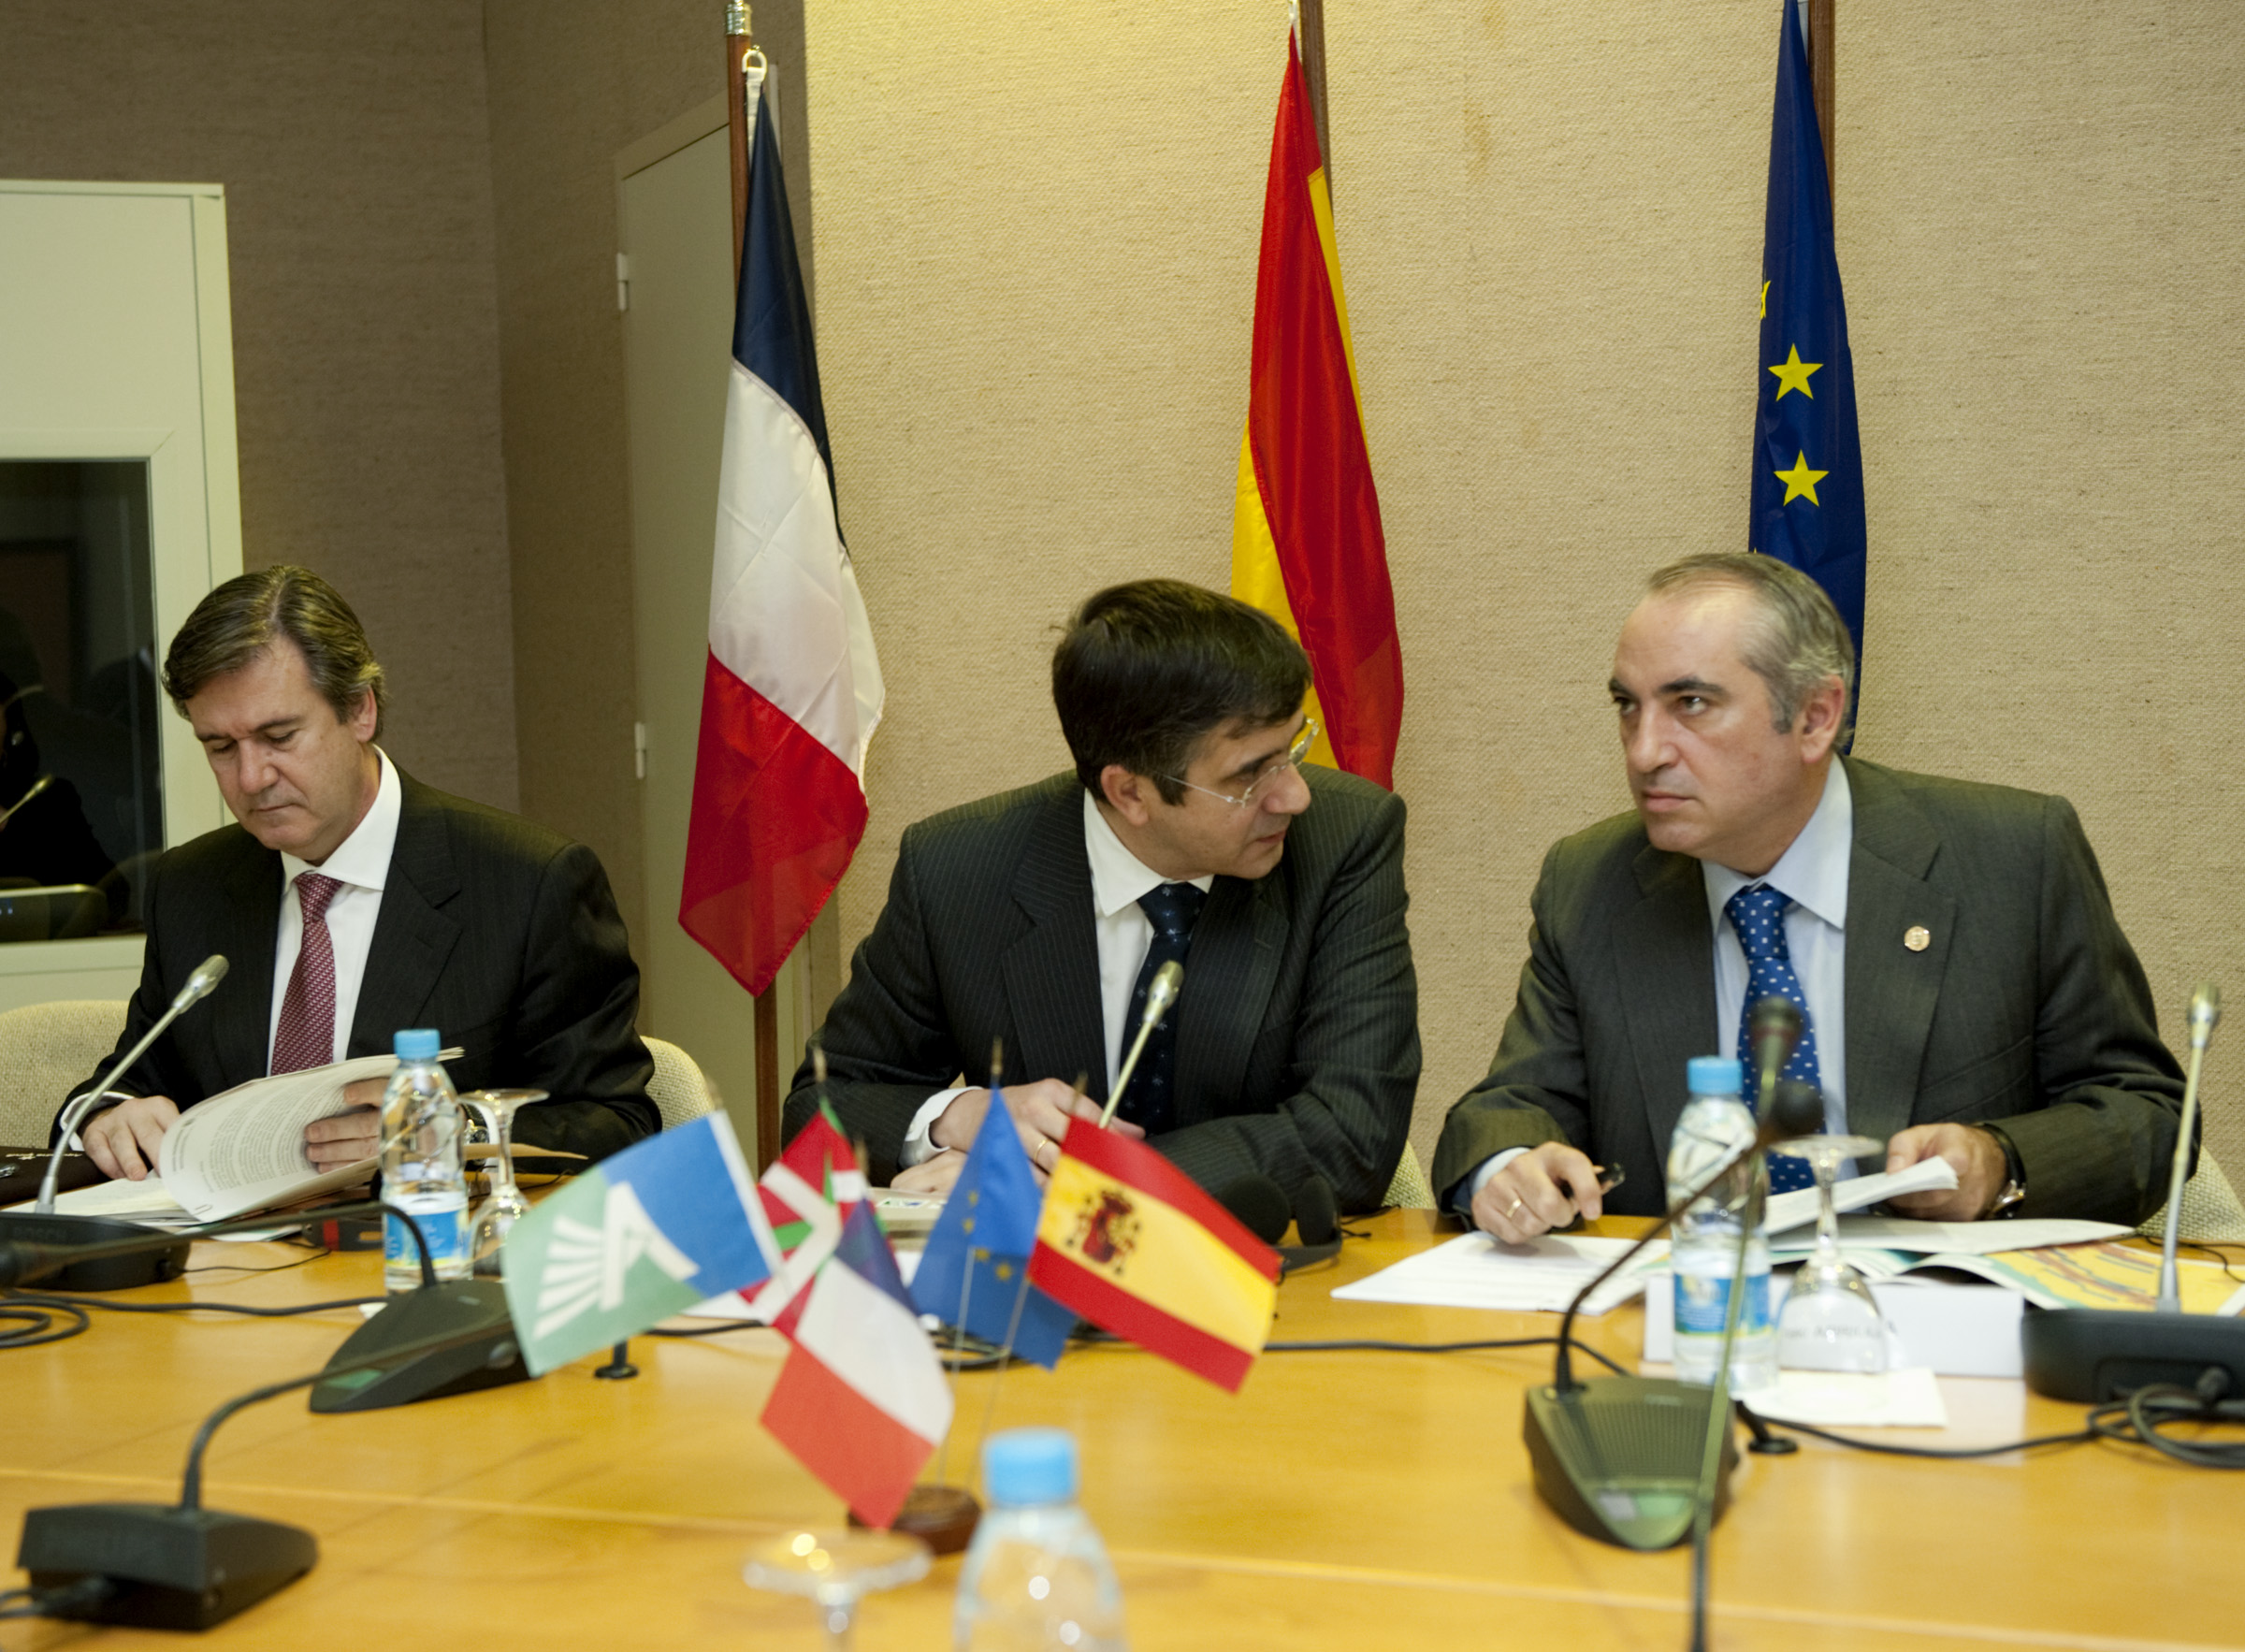 The Basque Country and Aquitaine initiate the process to set up a Euro-region